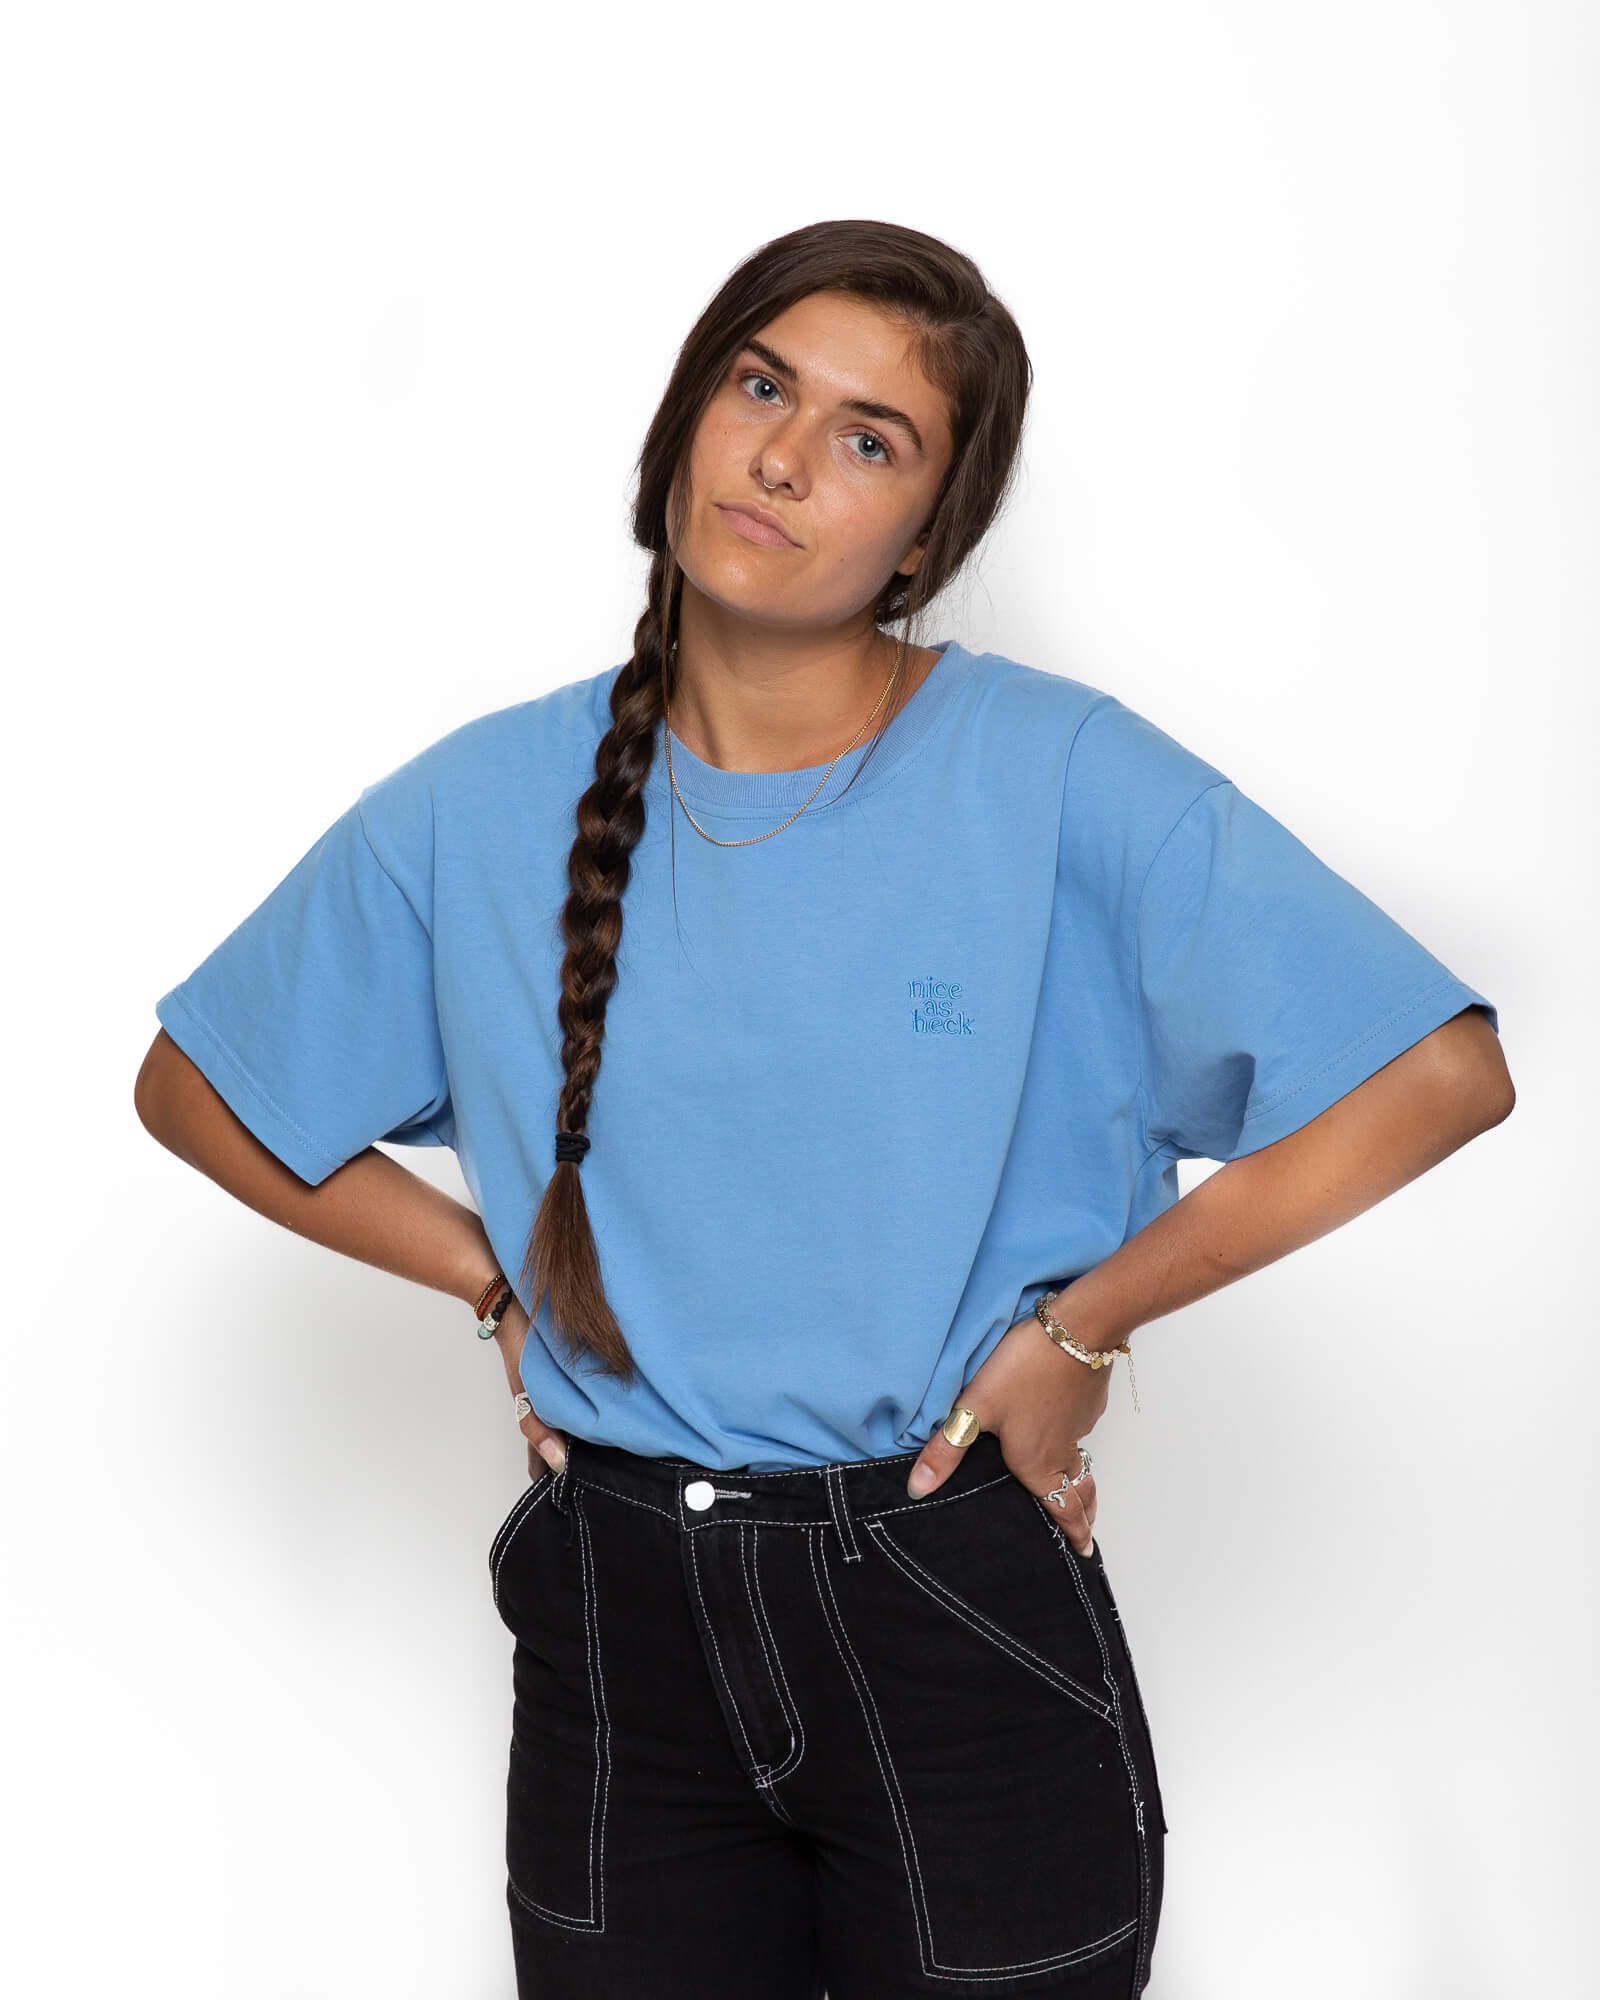 female model wearing the blue weekender tee with her hands on her hips